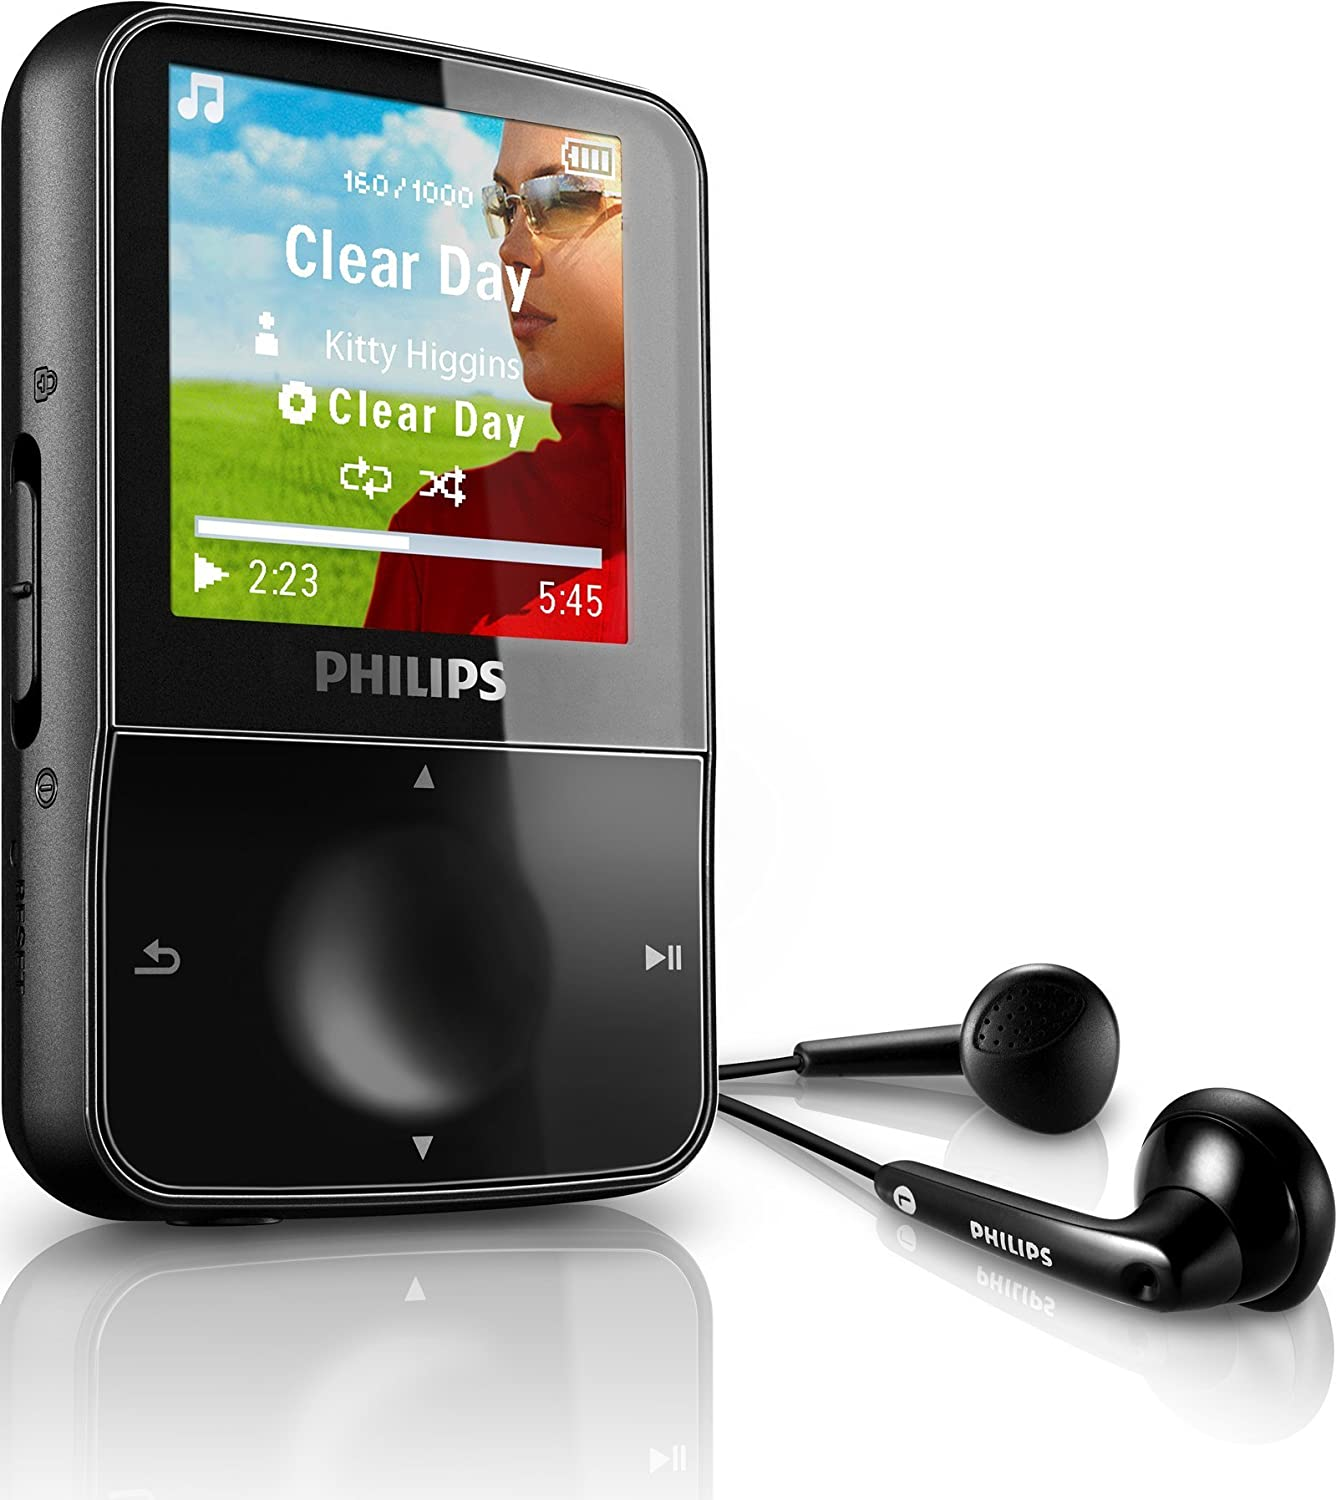 Philips GoGear Vibe 4GB MP3 and Video Player with 1.5-inch LCD and Internet  Video Download Including YouTube - Black: Amazon.co.uk: Audio & HiFi